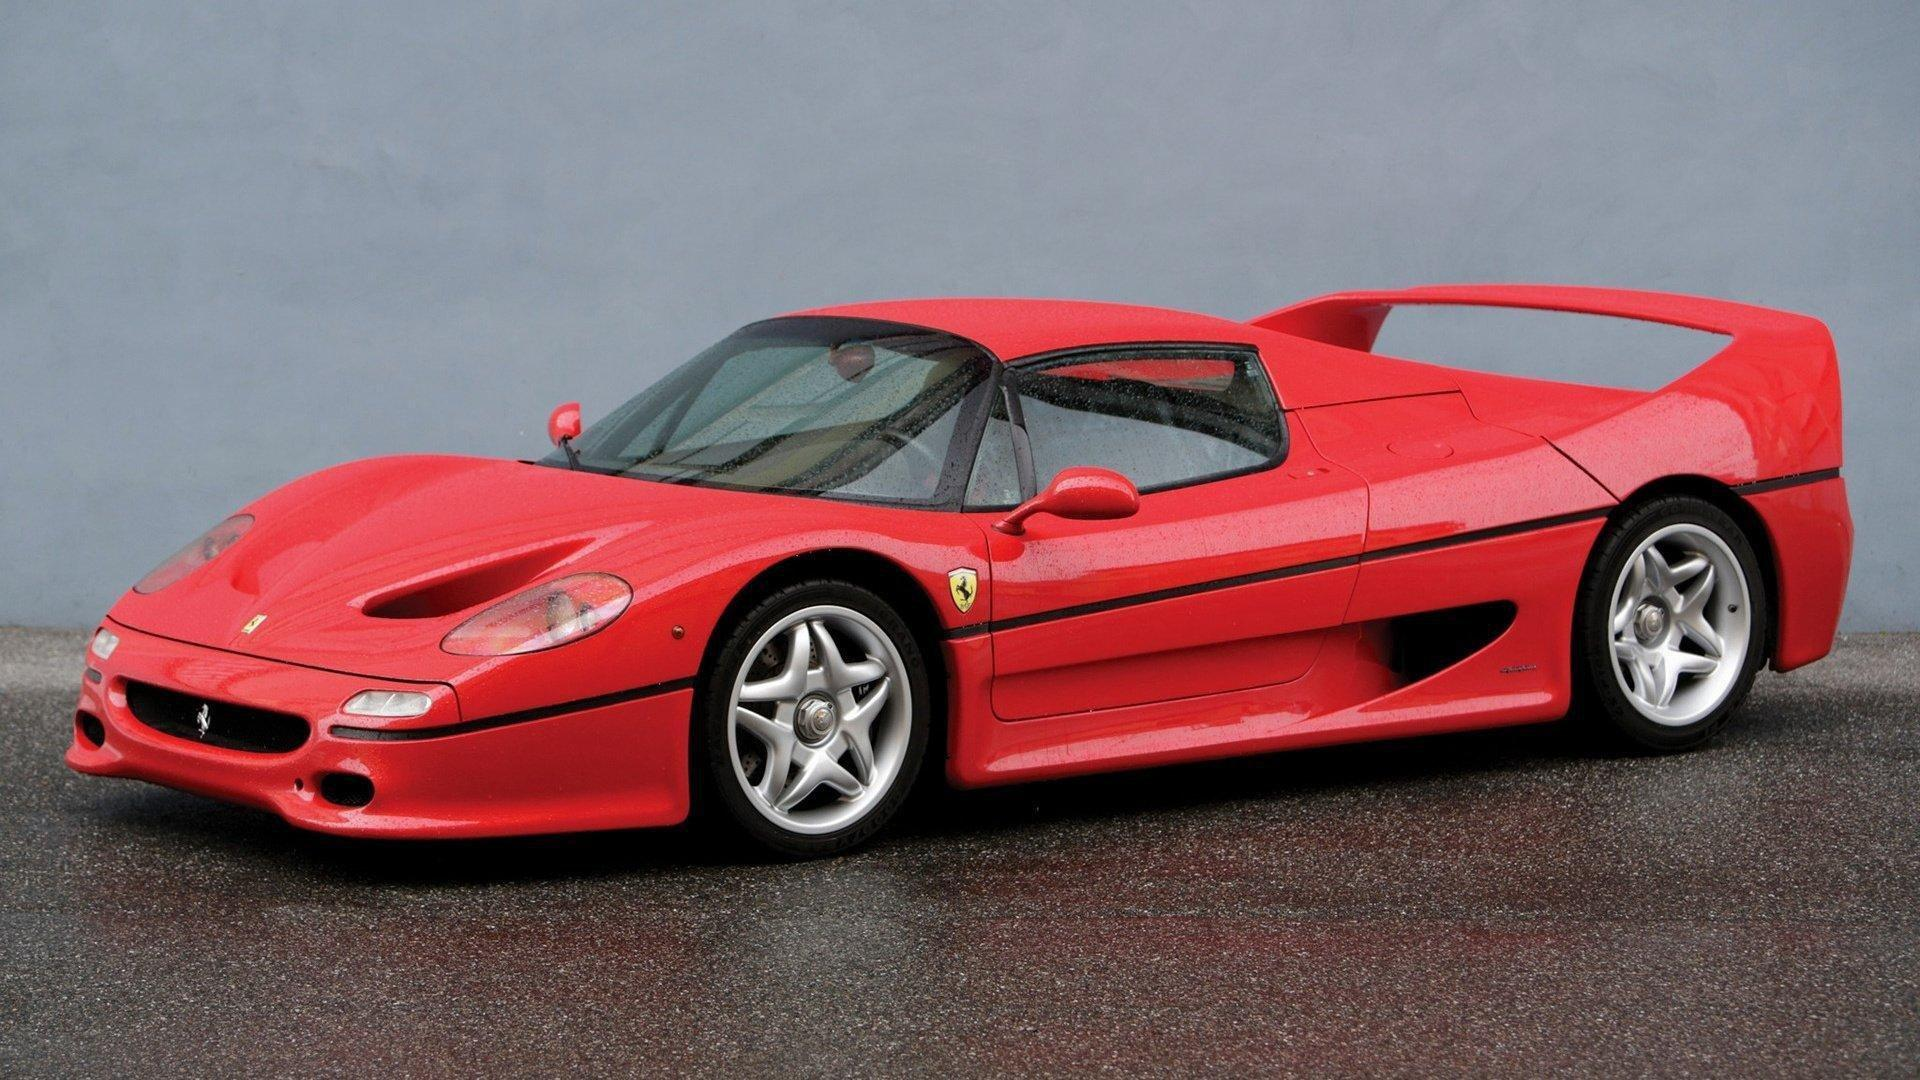 Ferrari f50 gt 1995 Ferrari F50 HD Wallpapers for iPhone, Android